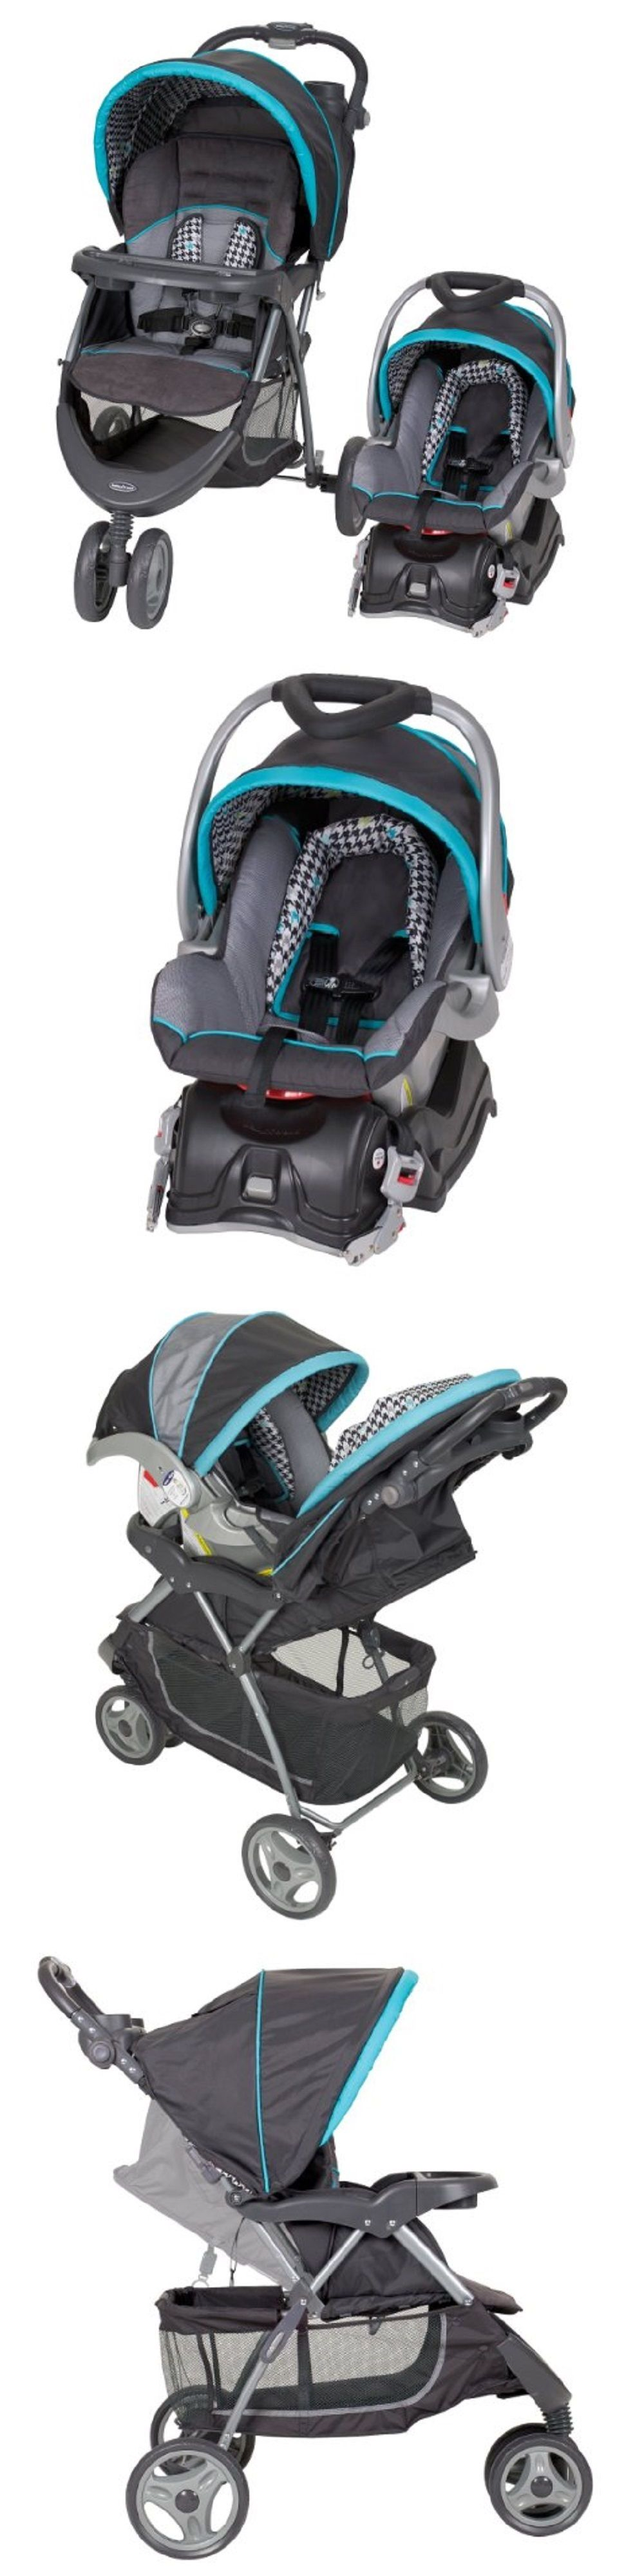 Baby Travel System With Stroller Pram And Car Seat W Base